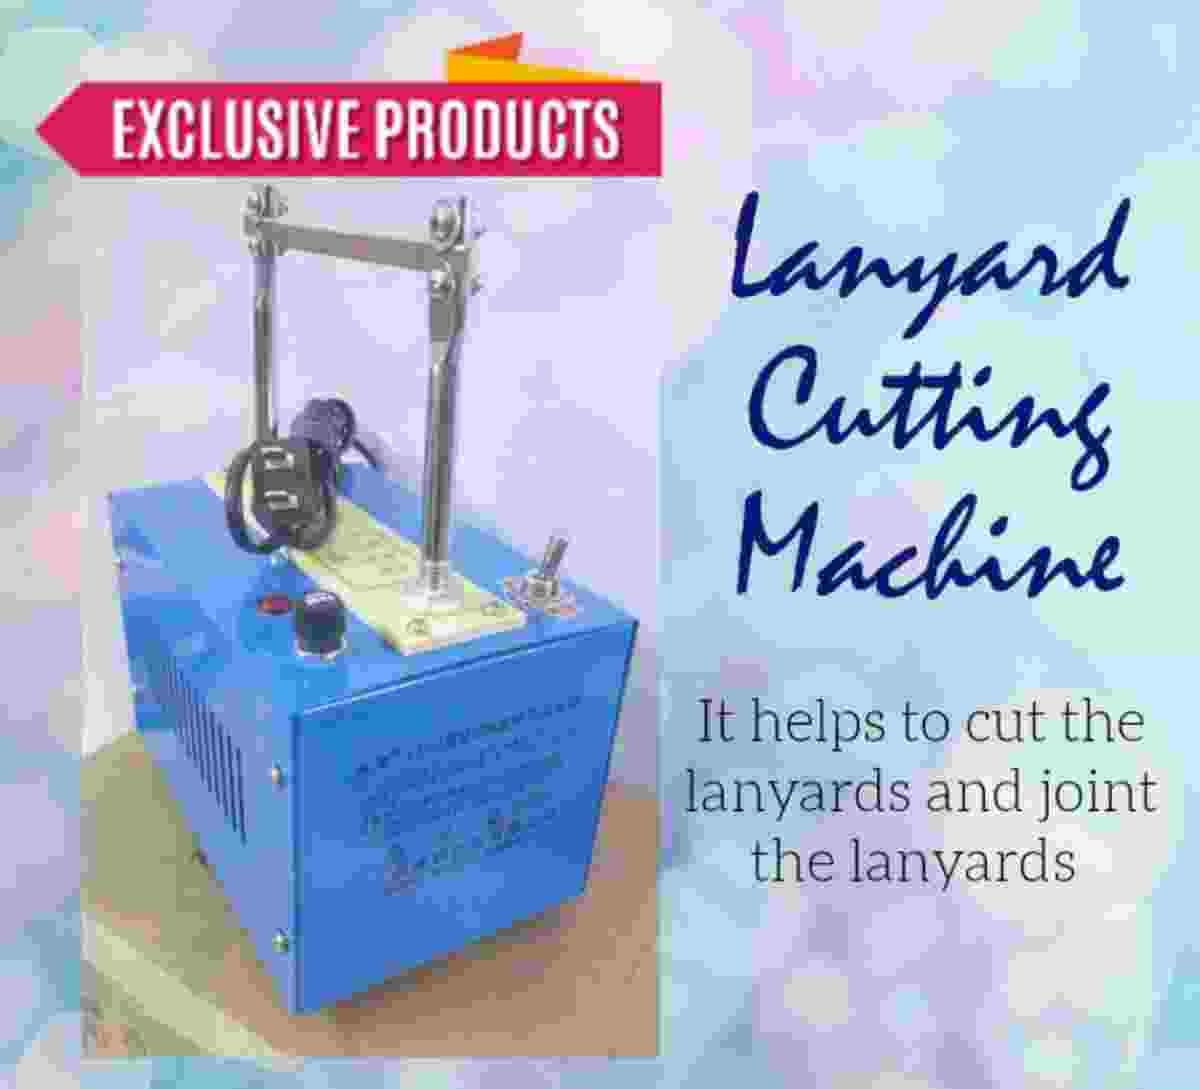 Icard Dori Cutter | Lanyard Cutting Cut Machine Price 6 May 2021 Lanyard Dori Cutter Machine online shop - HelpingIndia